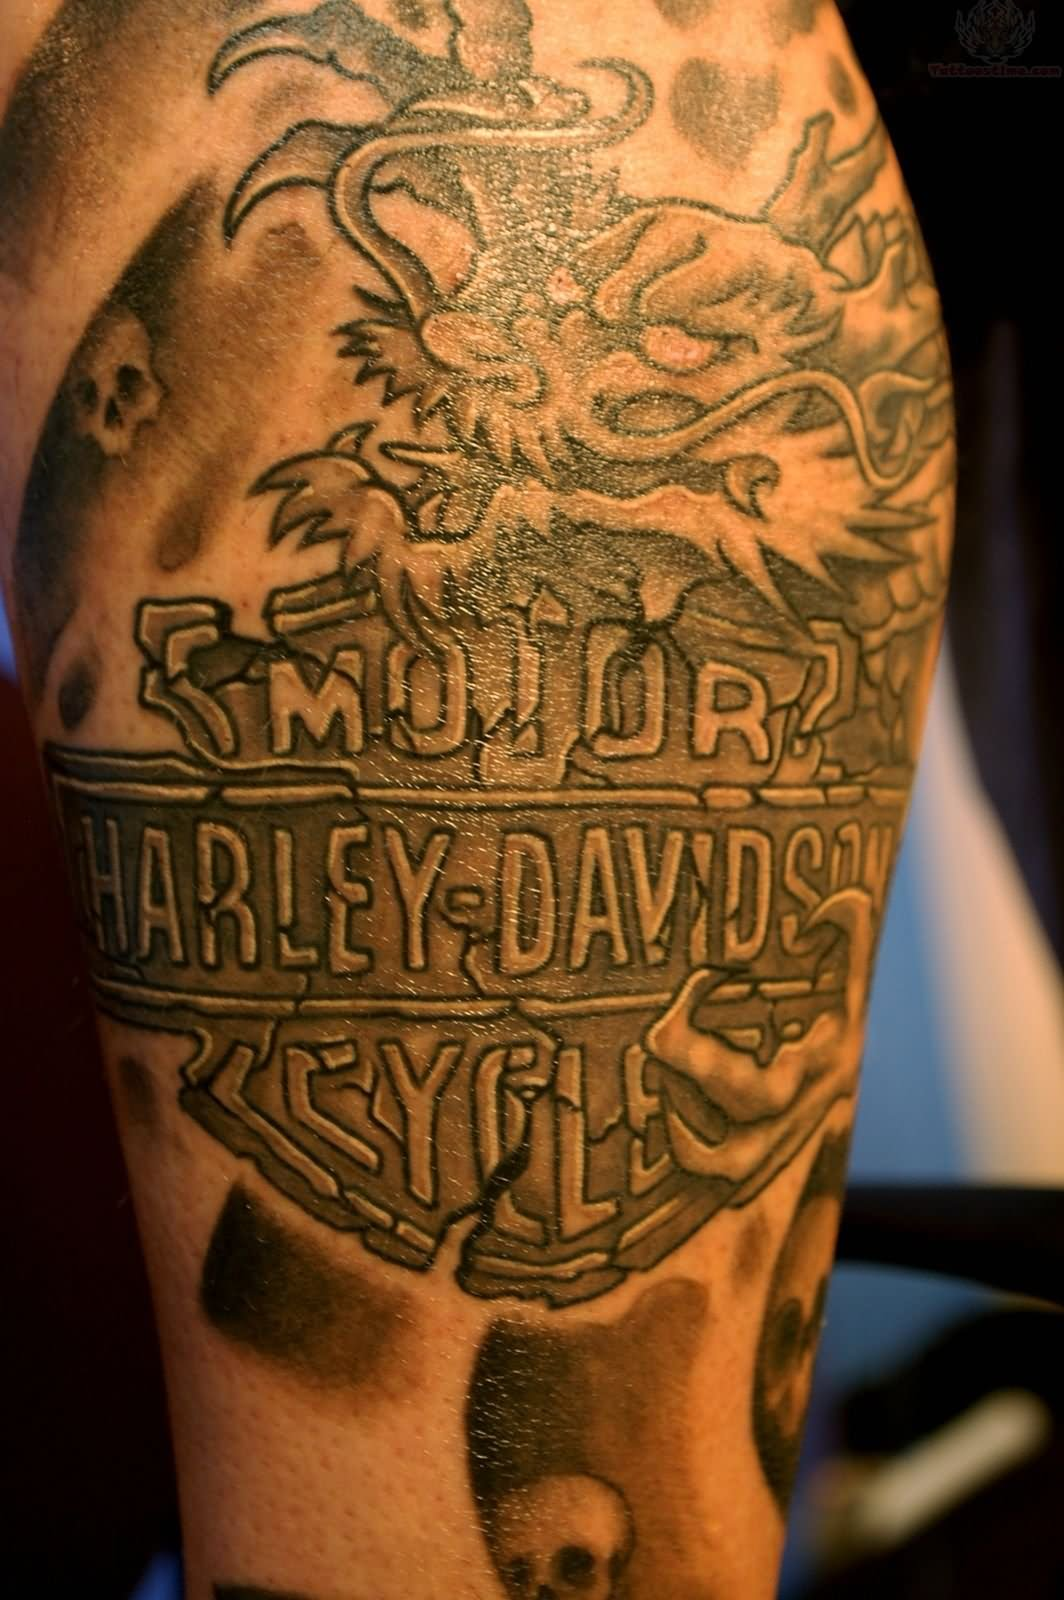 Harley Davidson Tattoos Designs Ideas And Meaning